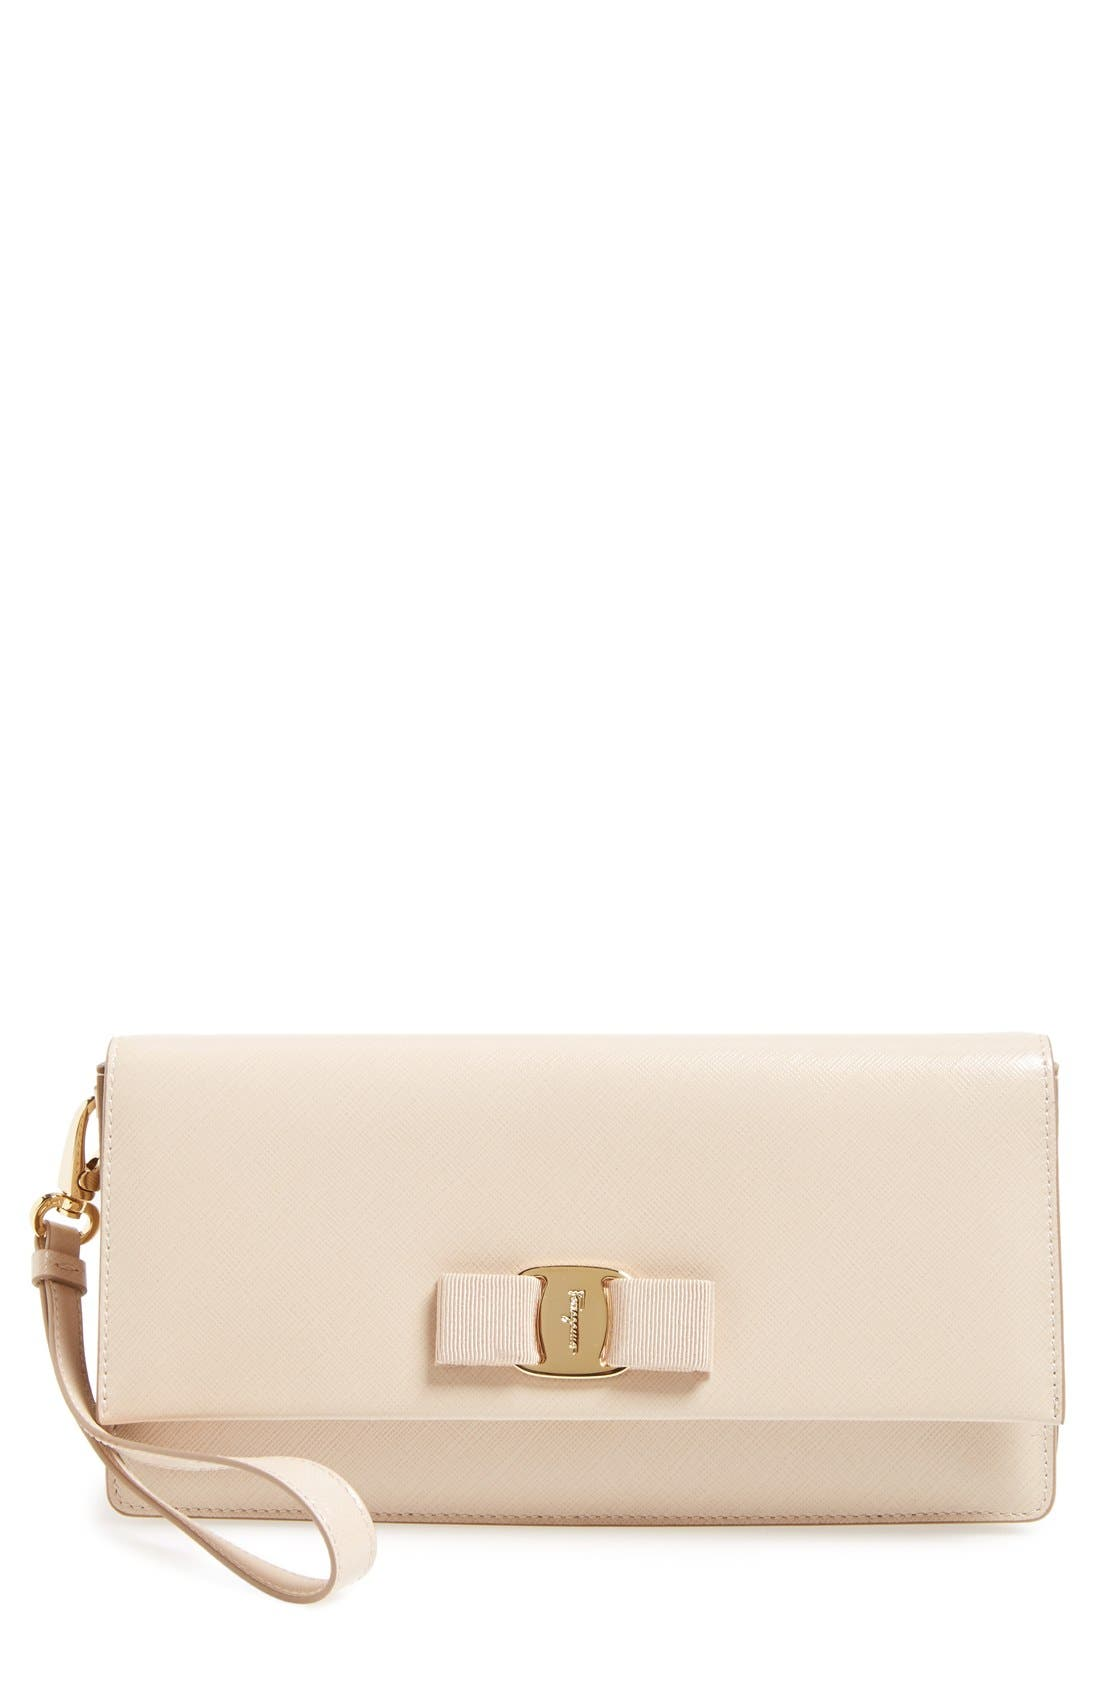 'Camy' Clutch,                             Main thumbnail 1, color,                             New Bisque